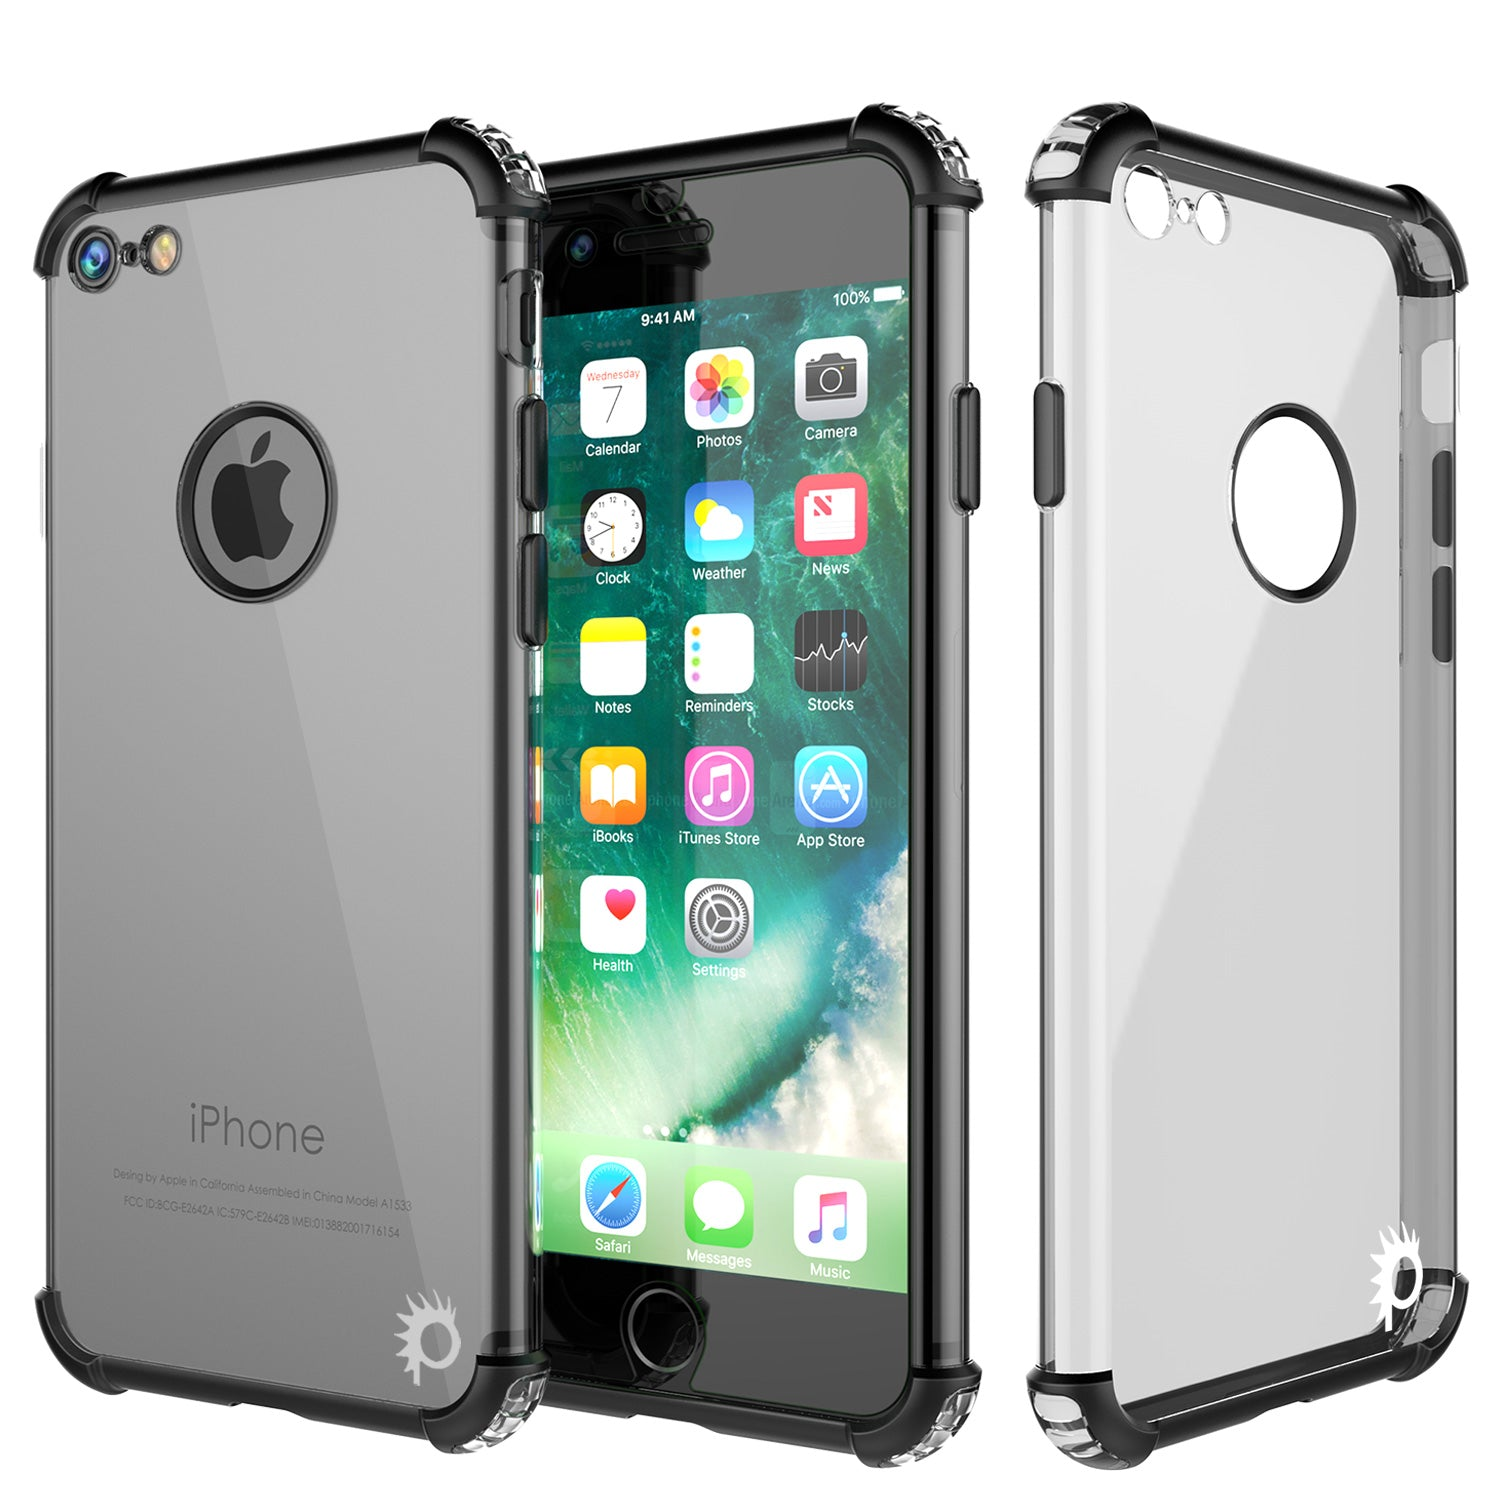 iPhone 7 Case, Punkcase [BLAZE Black SERIES] Protective Cover W/ PunkShield Screen Protector [Shockproof] [Slim Fit] for Apple iPhone